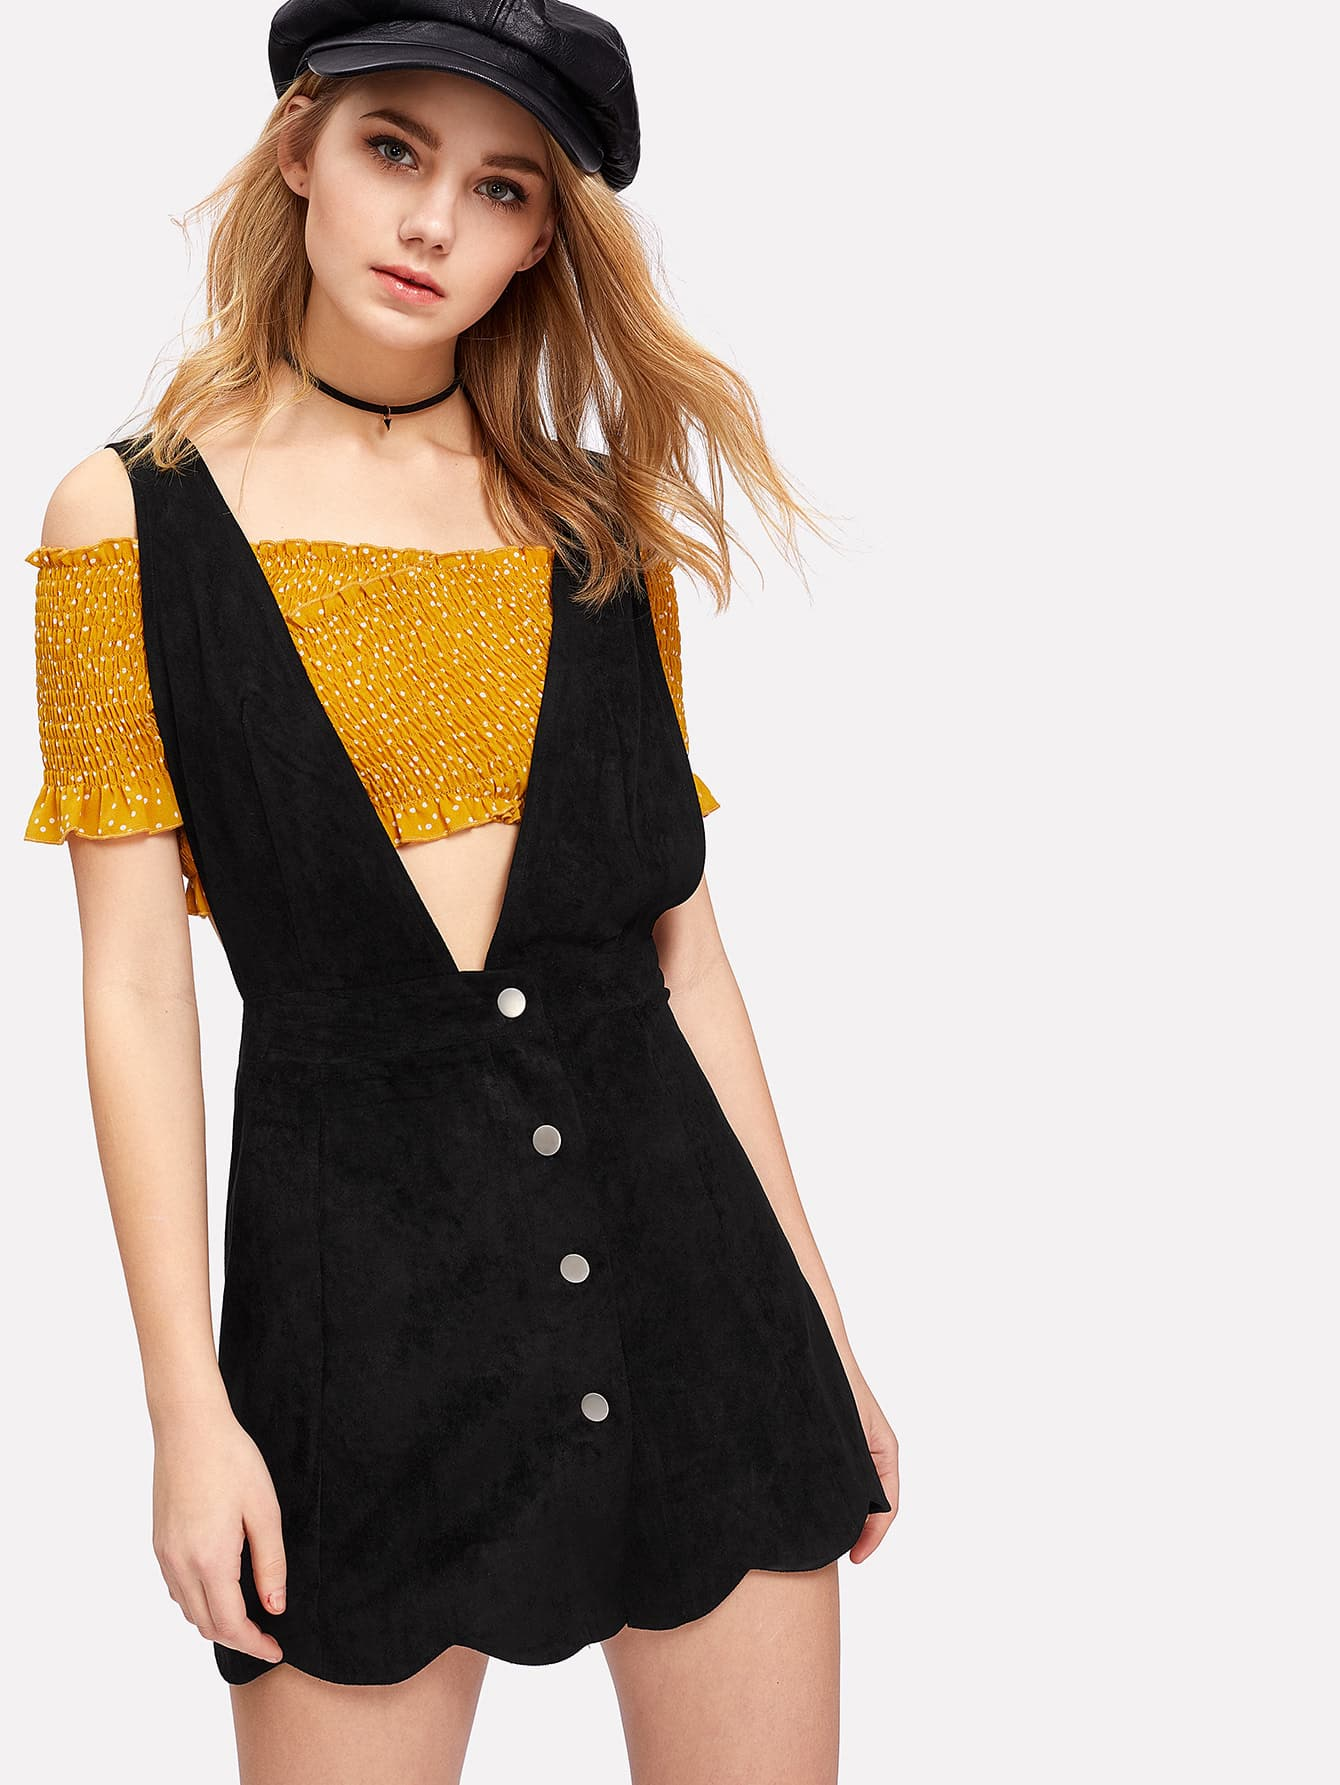 Suede Scallop Hem Overall Dress overall yumi overall